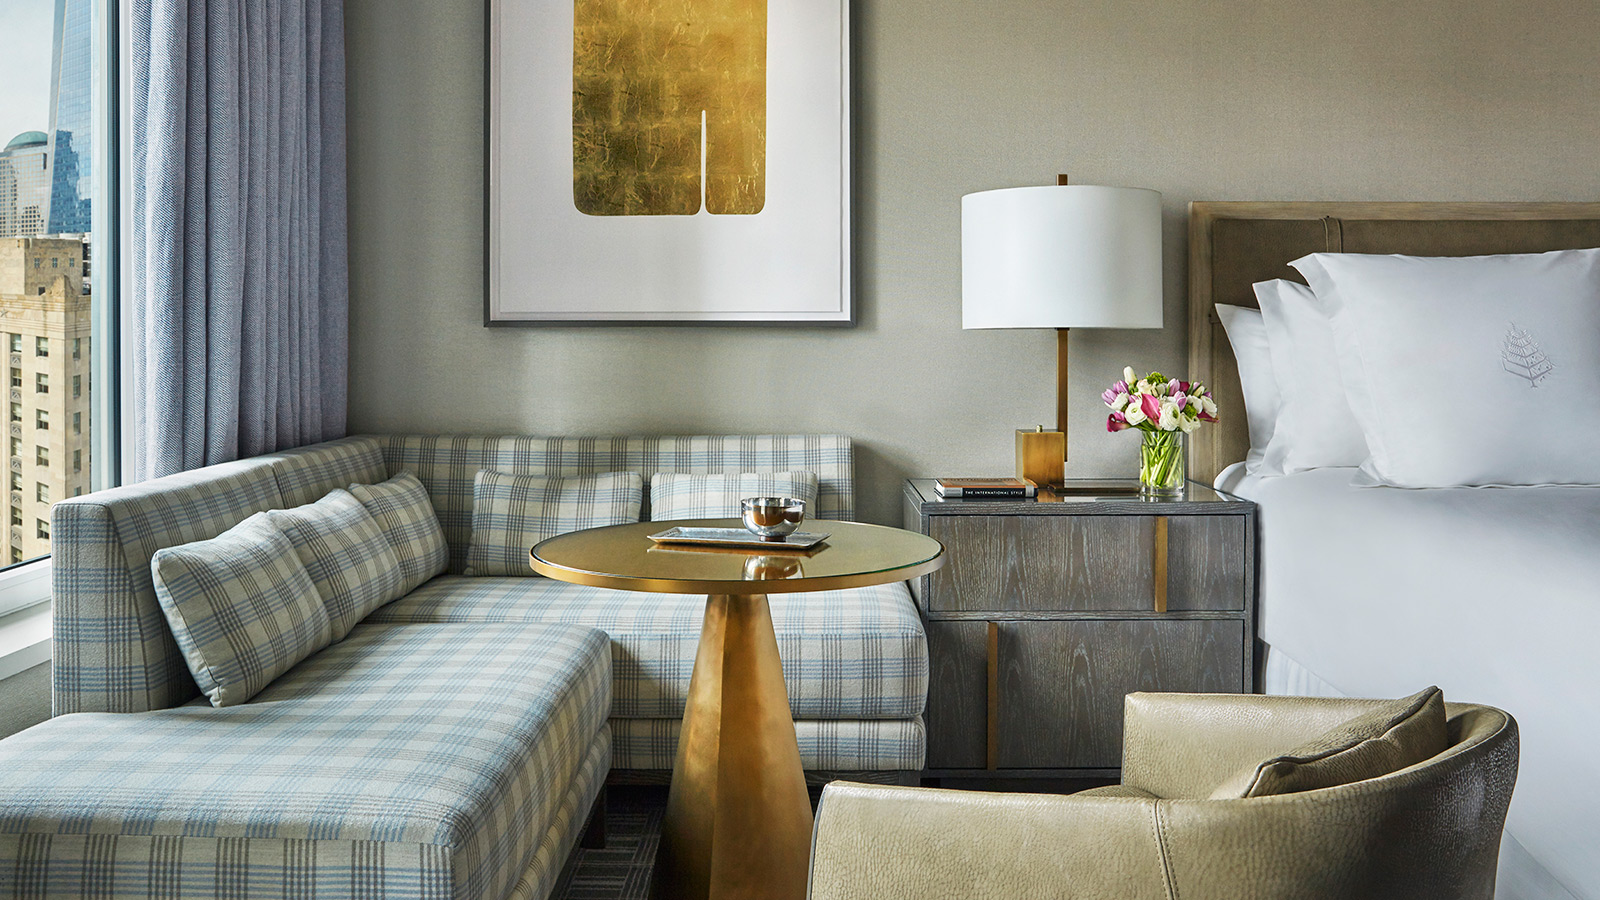 Panoramic Studio Suite with Terrace at Four Seasons Hotel New York